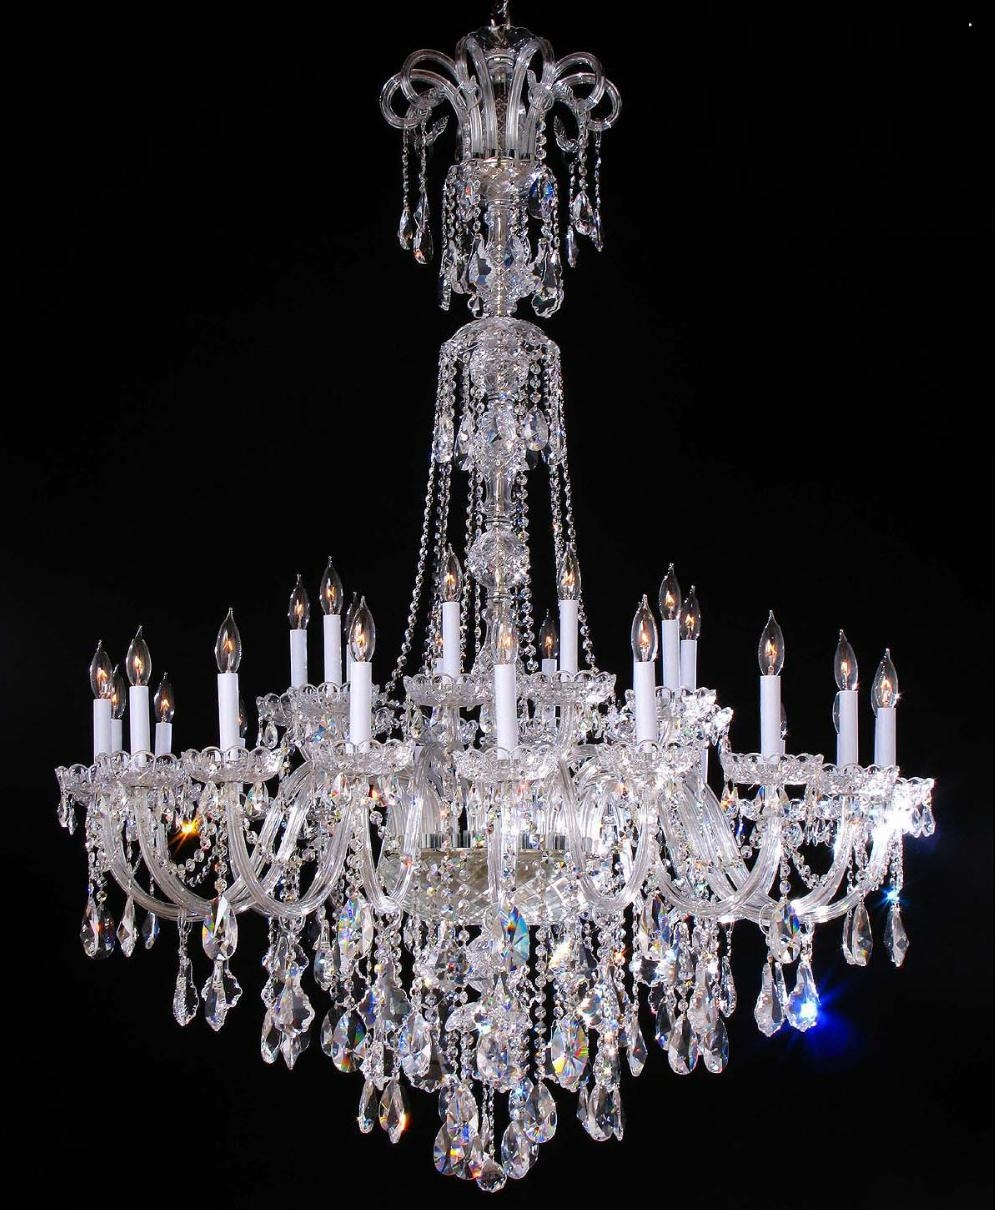 High Quality Wholesale Big Chandelier From China Big Chandelier Intended For Huge Crystal Chandelier (Image 7 of 15)